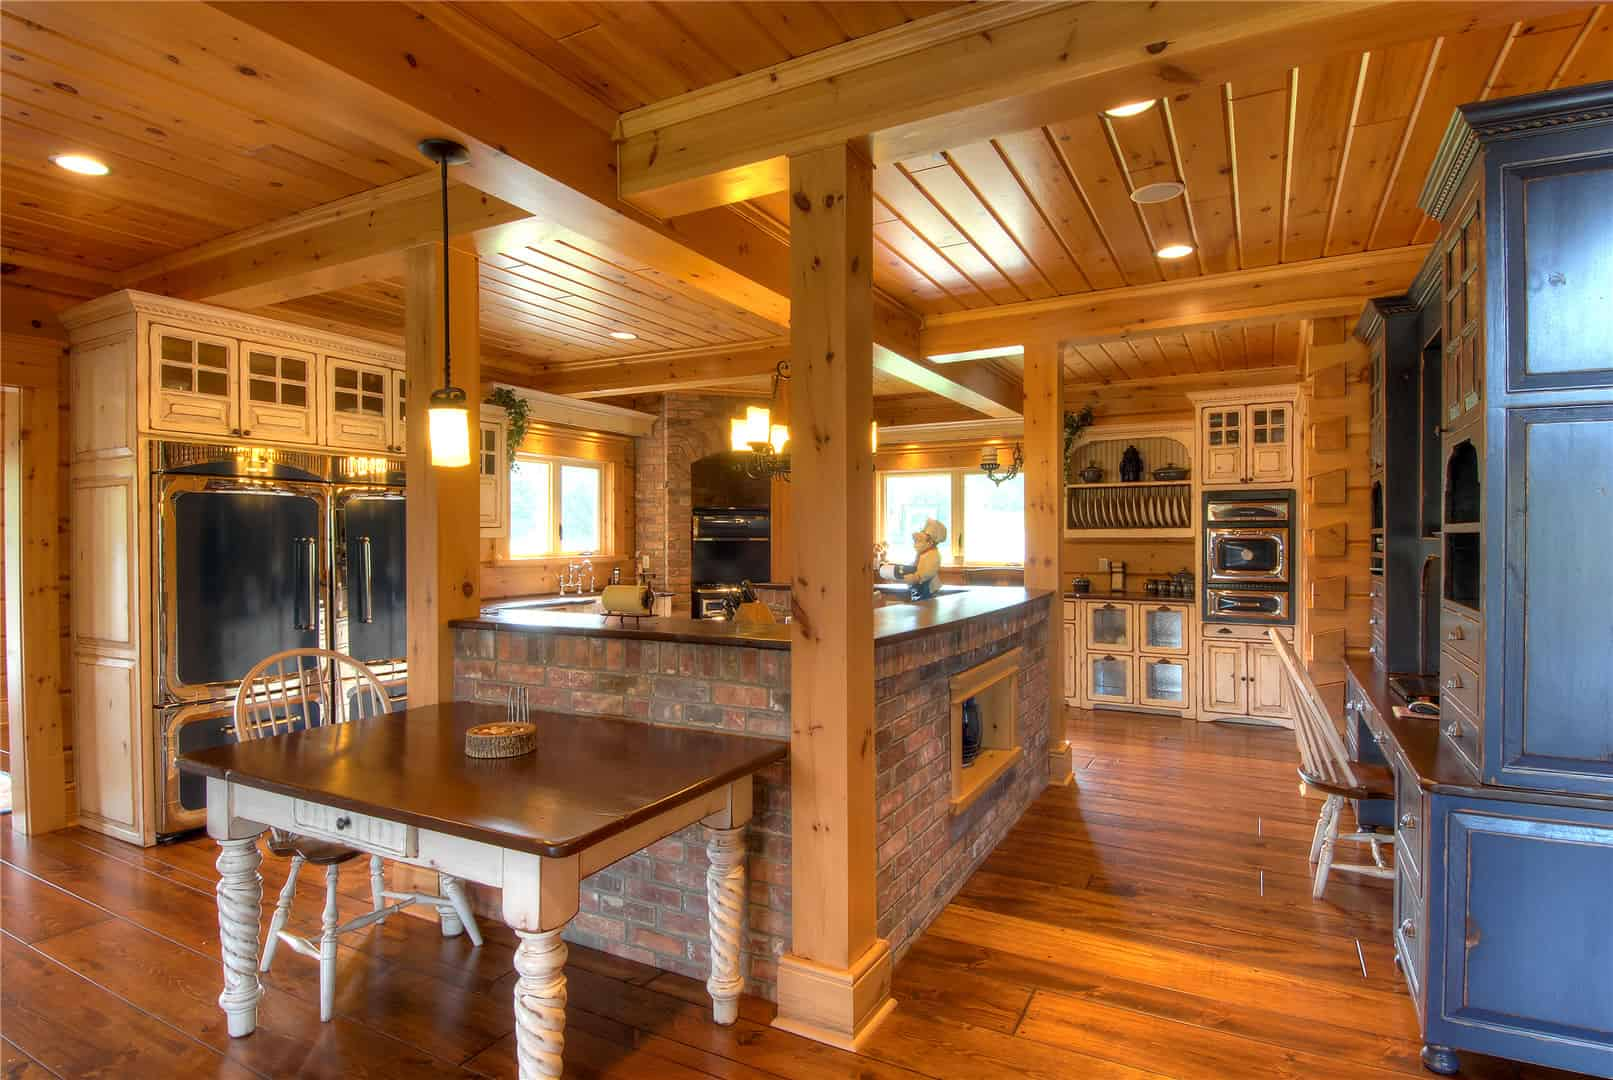 Photo of a gorgeous kitchen in an 1867 Confederation Log & Timber home